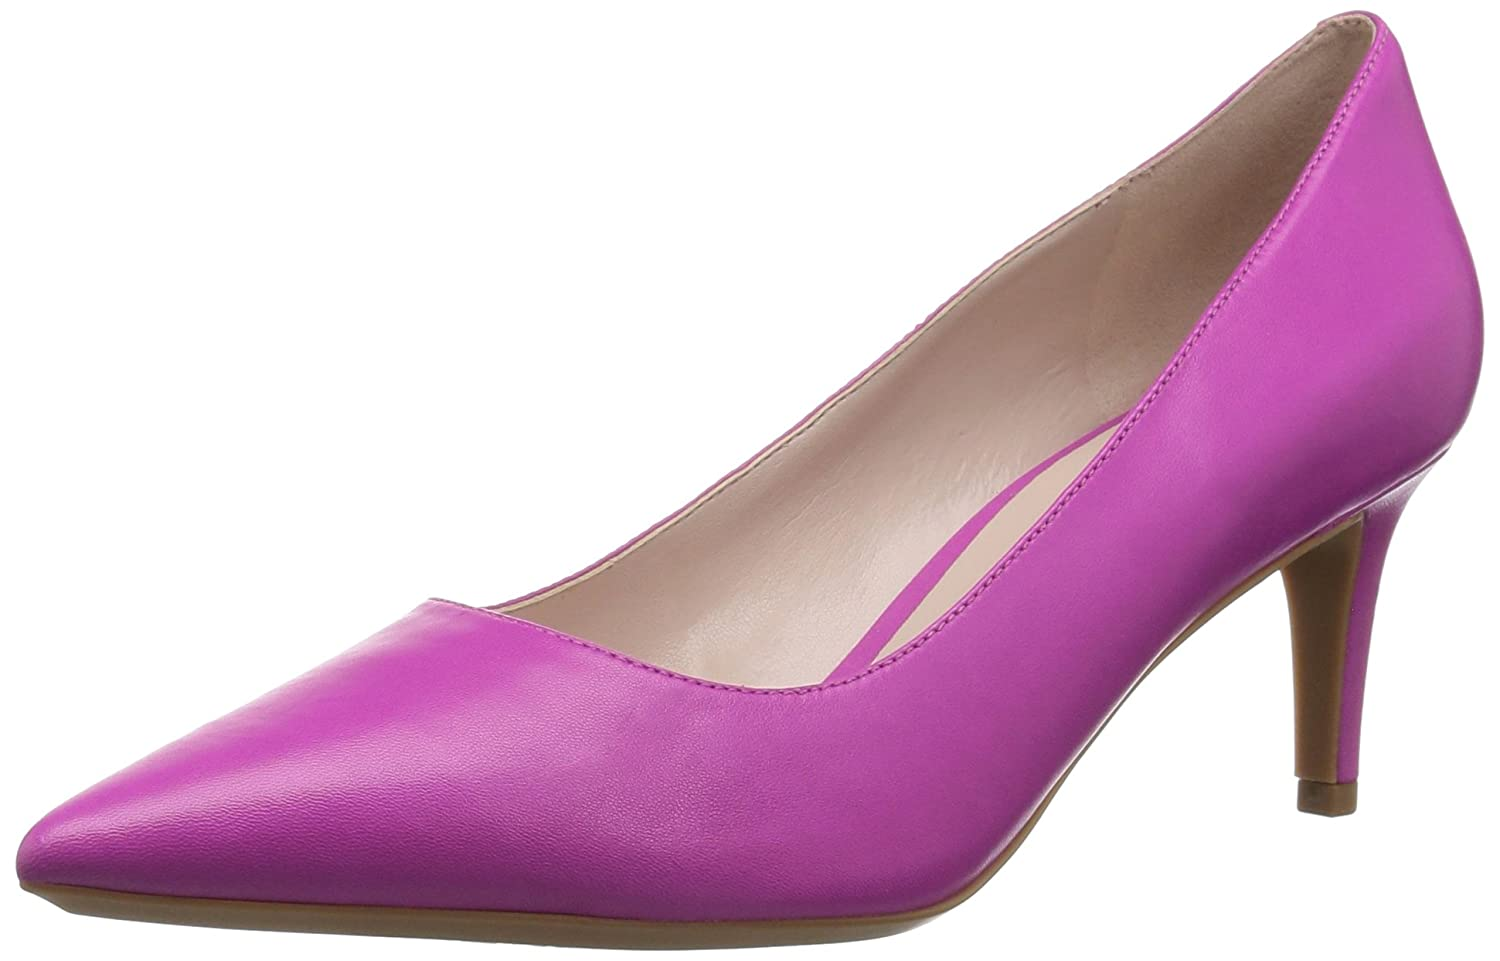 Nine West Women's SOHO9X9 Leather Pump B076FQX99C 6.5 B(M) US|Pink